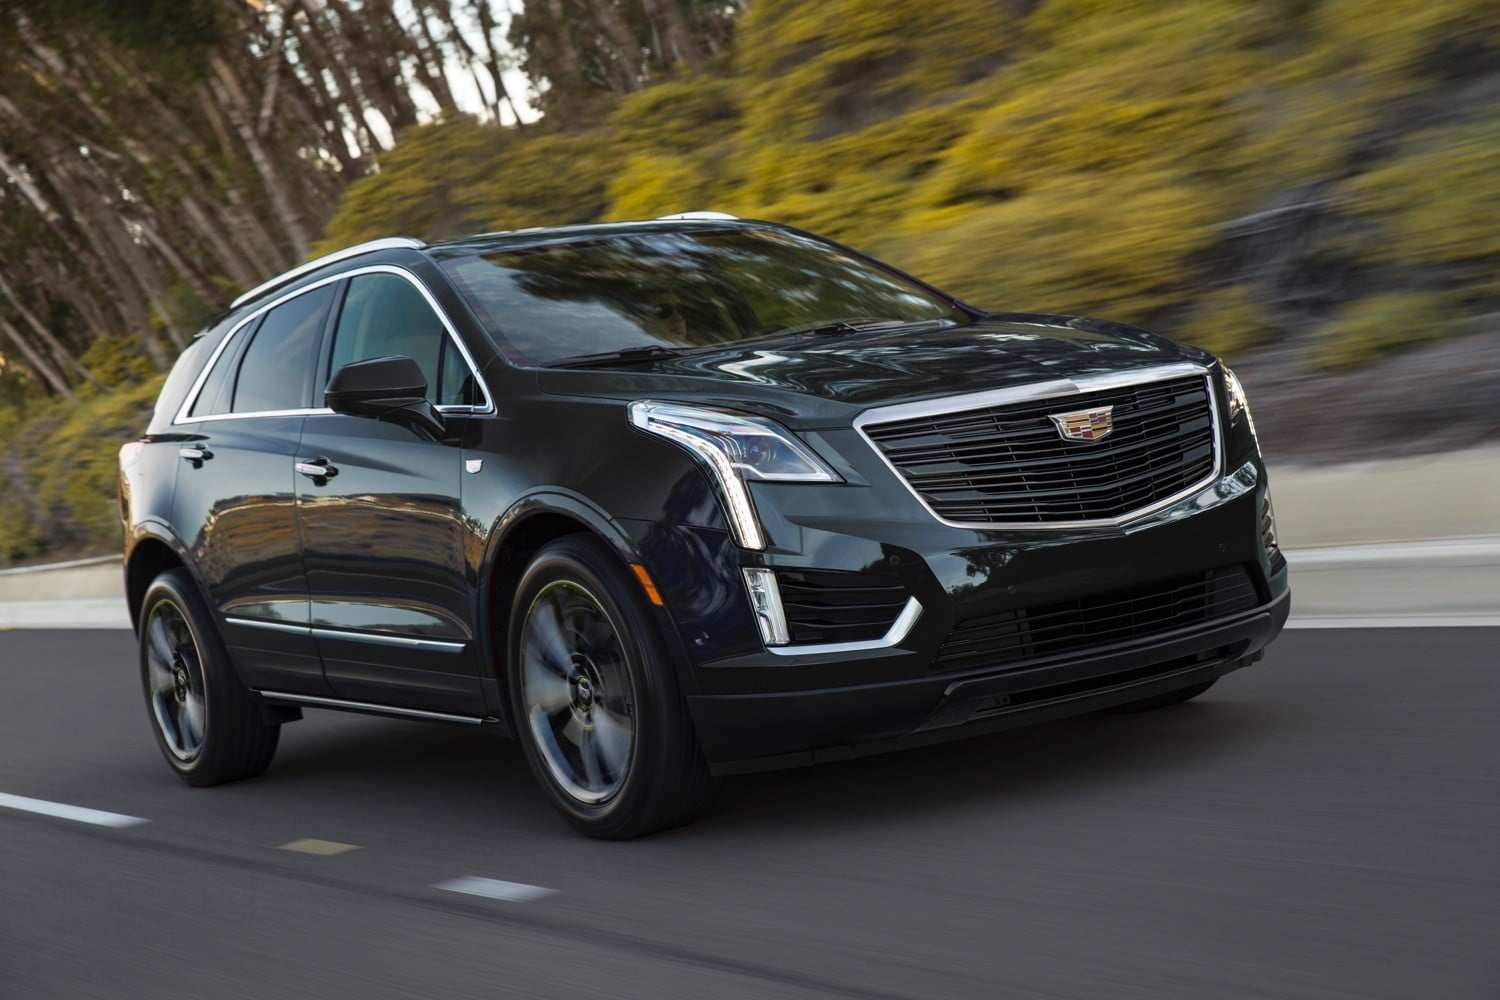 81 The Best 2019 Cadillac Self Driving Price Design And Review